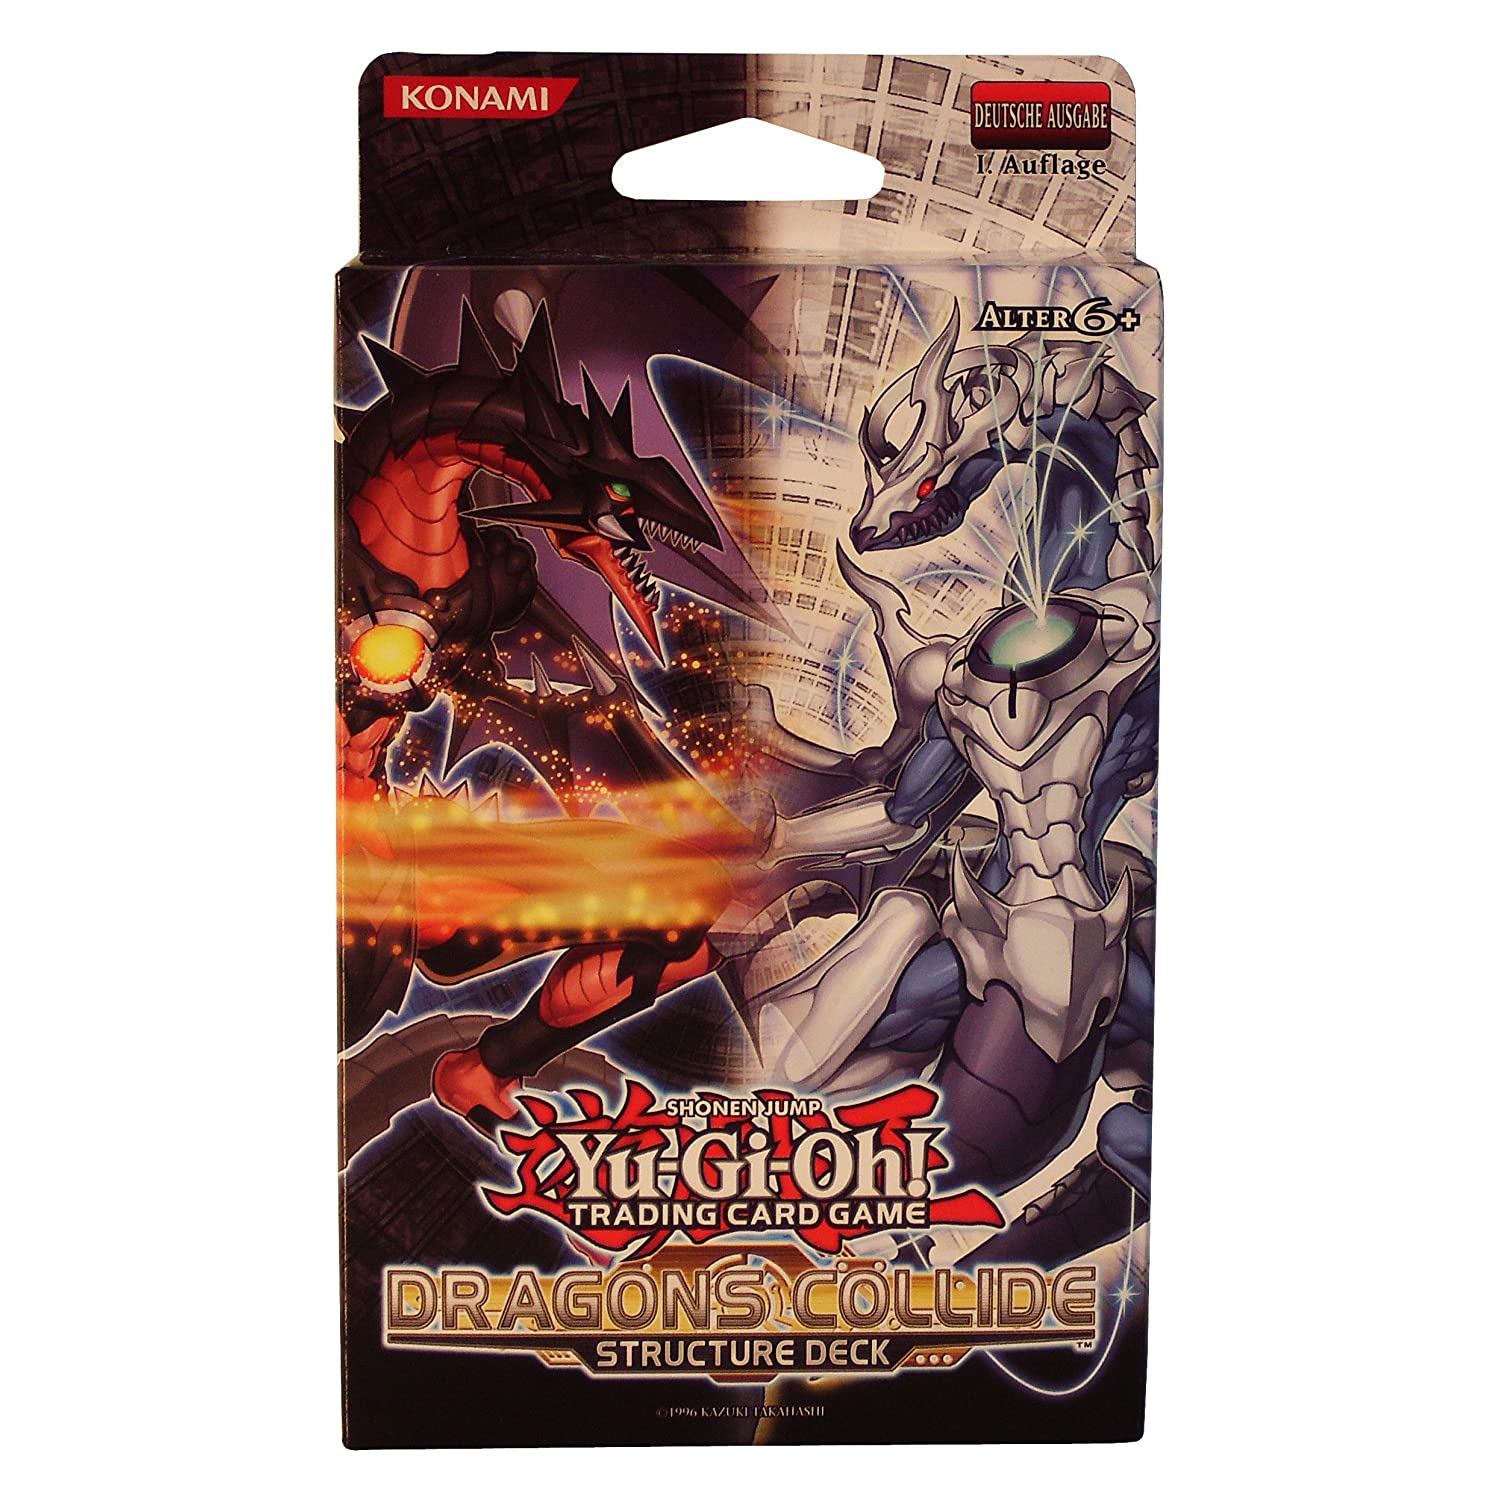 Die Neusten Yugioh Decks: Yu-Gi-Oh! Structure Deck Dragons Collide, Deutsch